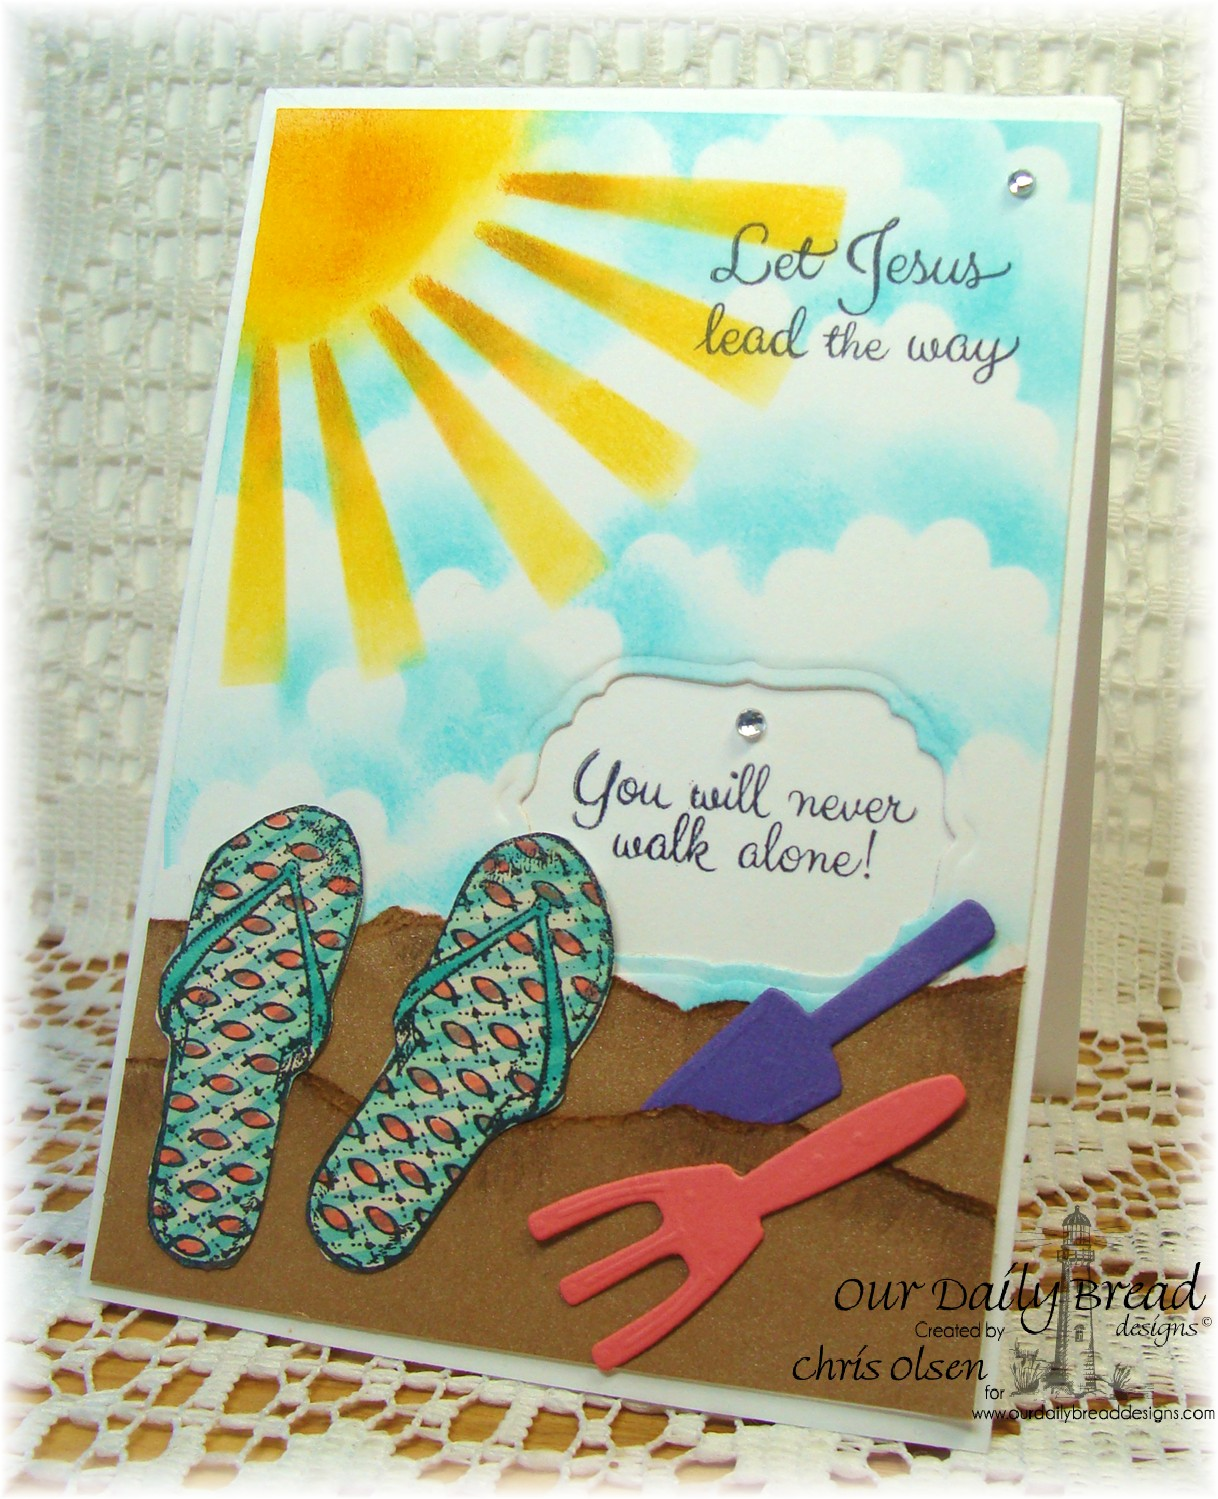 Stamps Our Daily Bread Designs Walk with Jesus, ODBD Custom Flip Flops Die, ODBD Custom Apron and Tools Die